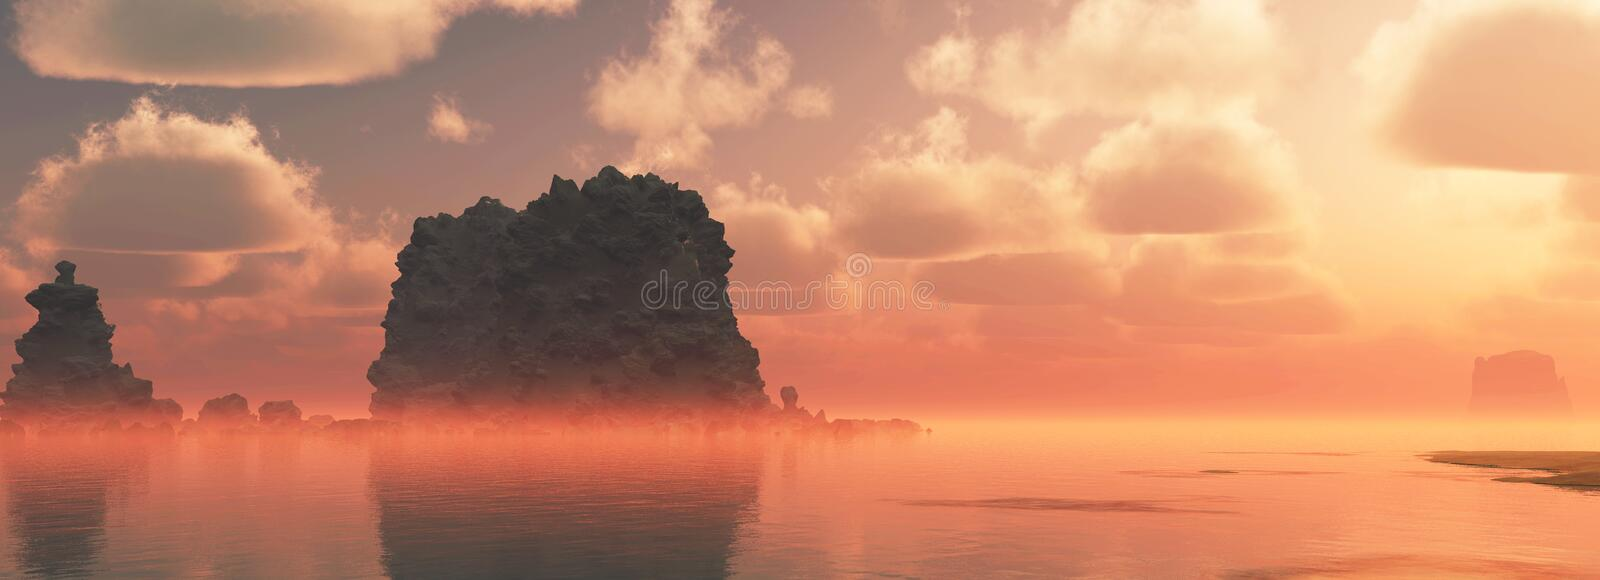 Rough coastal landscape with big rocks and cloudy sky at sunset. Mist over water. stock illustration